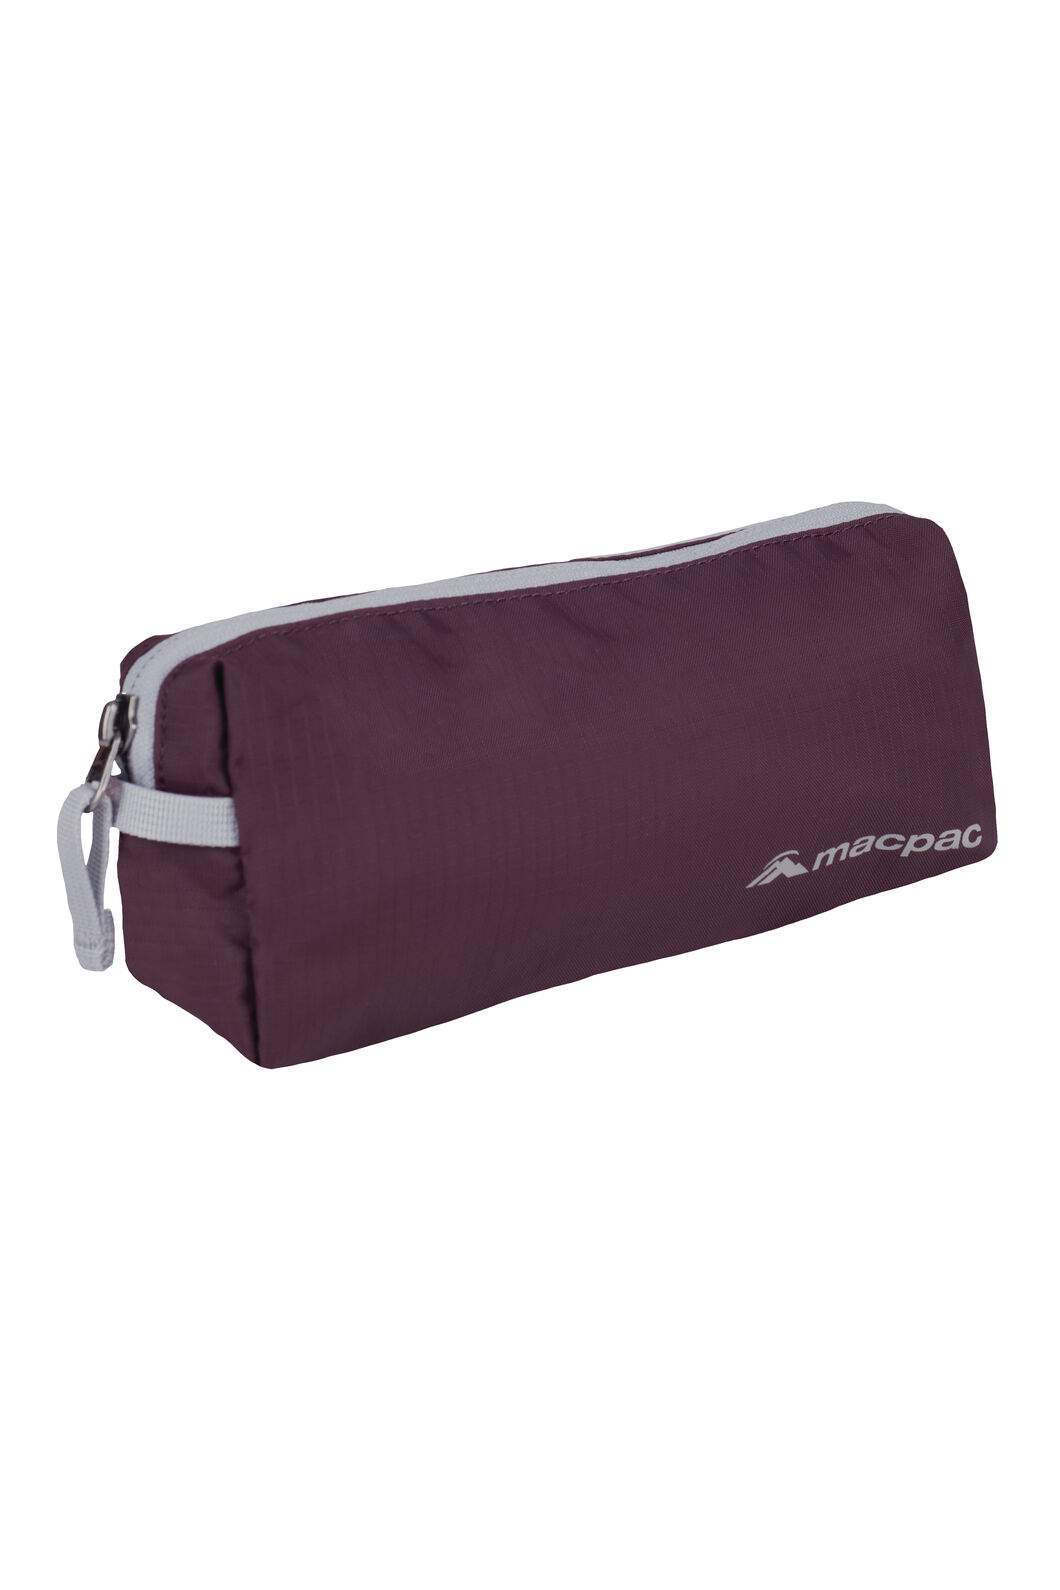 Macpac Carry-On Wash Bag, Winetasting, hi-res